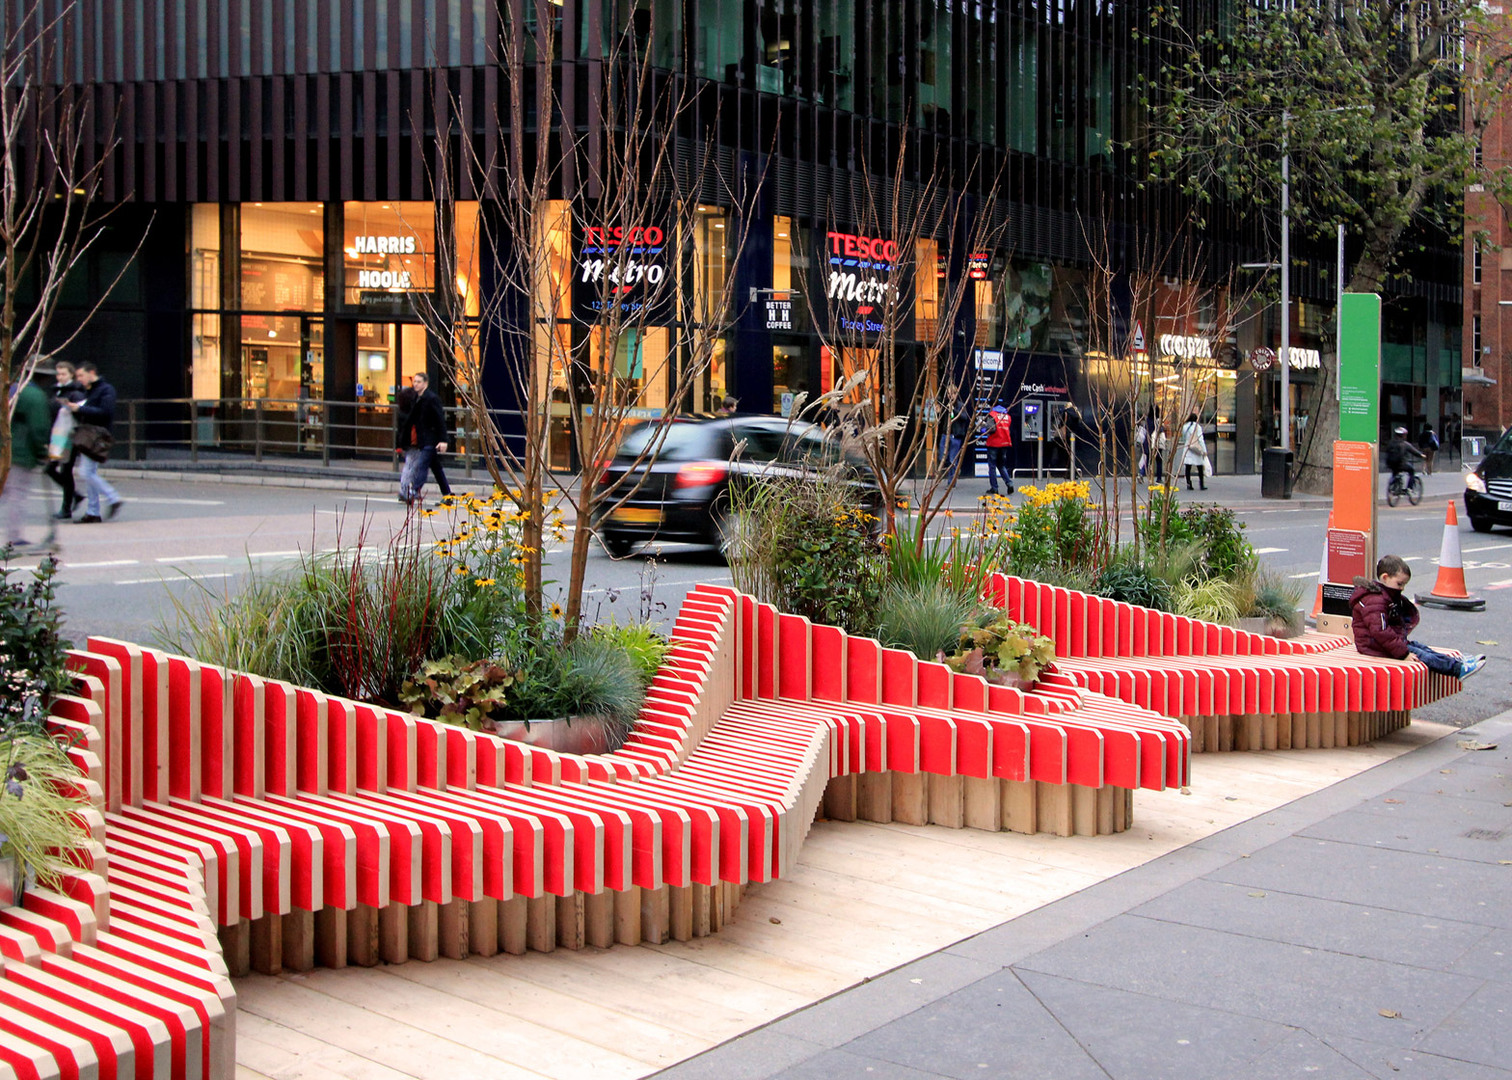 Parklet-Bench_WMBstudio_Tooley-Street_London-Bridge_Team-London-Bridge_Transport-for-London_dezeen_1568_2